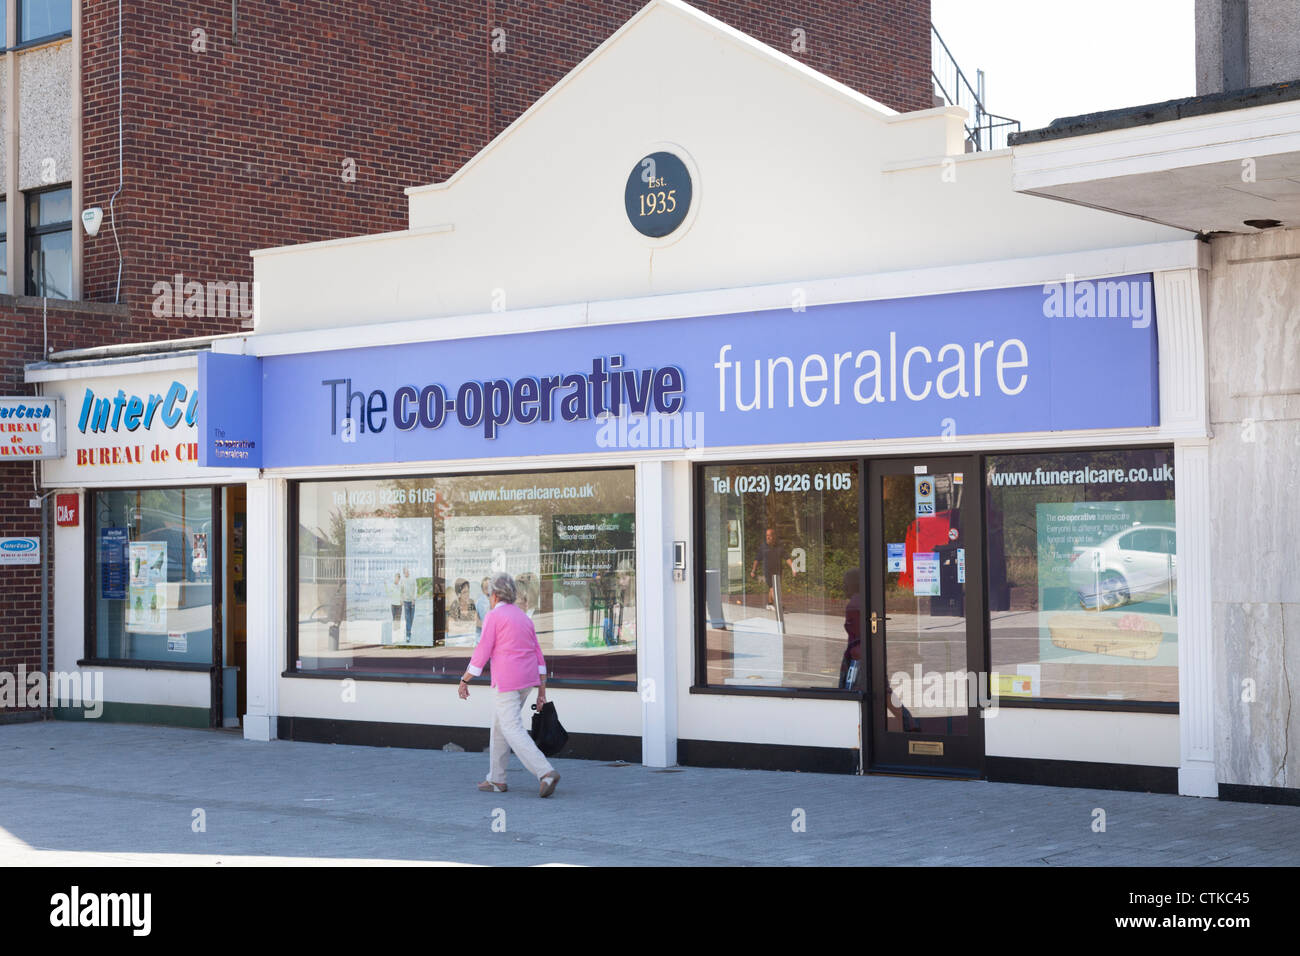 co-operative funeralcare shop front on high street - Stock Image